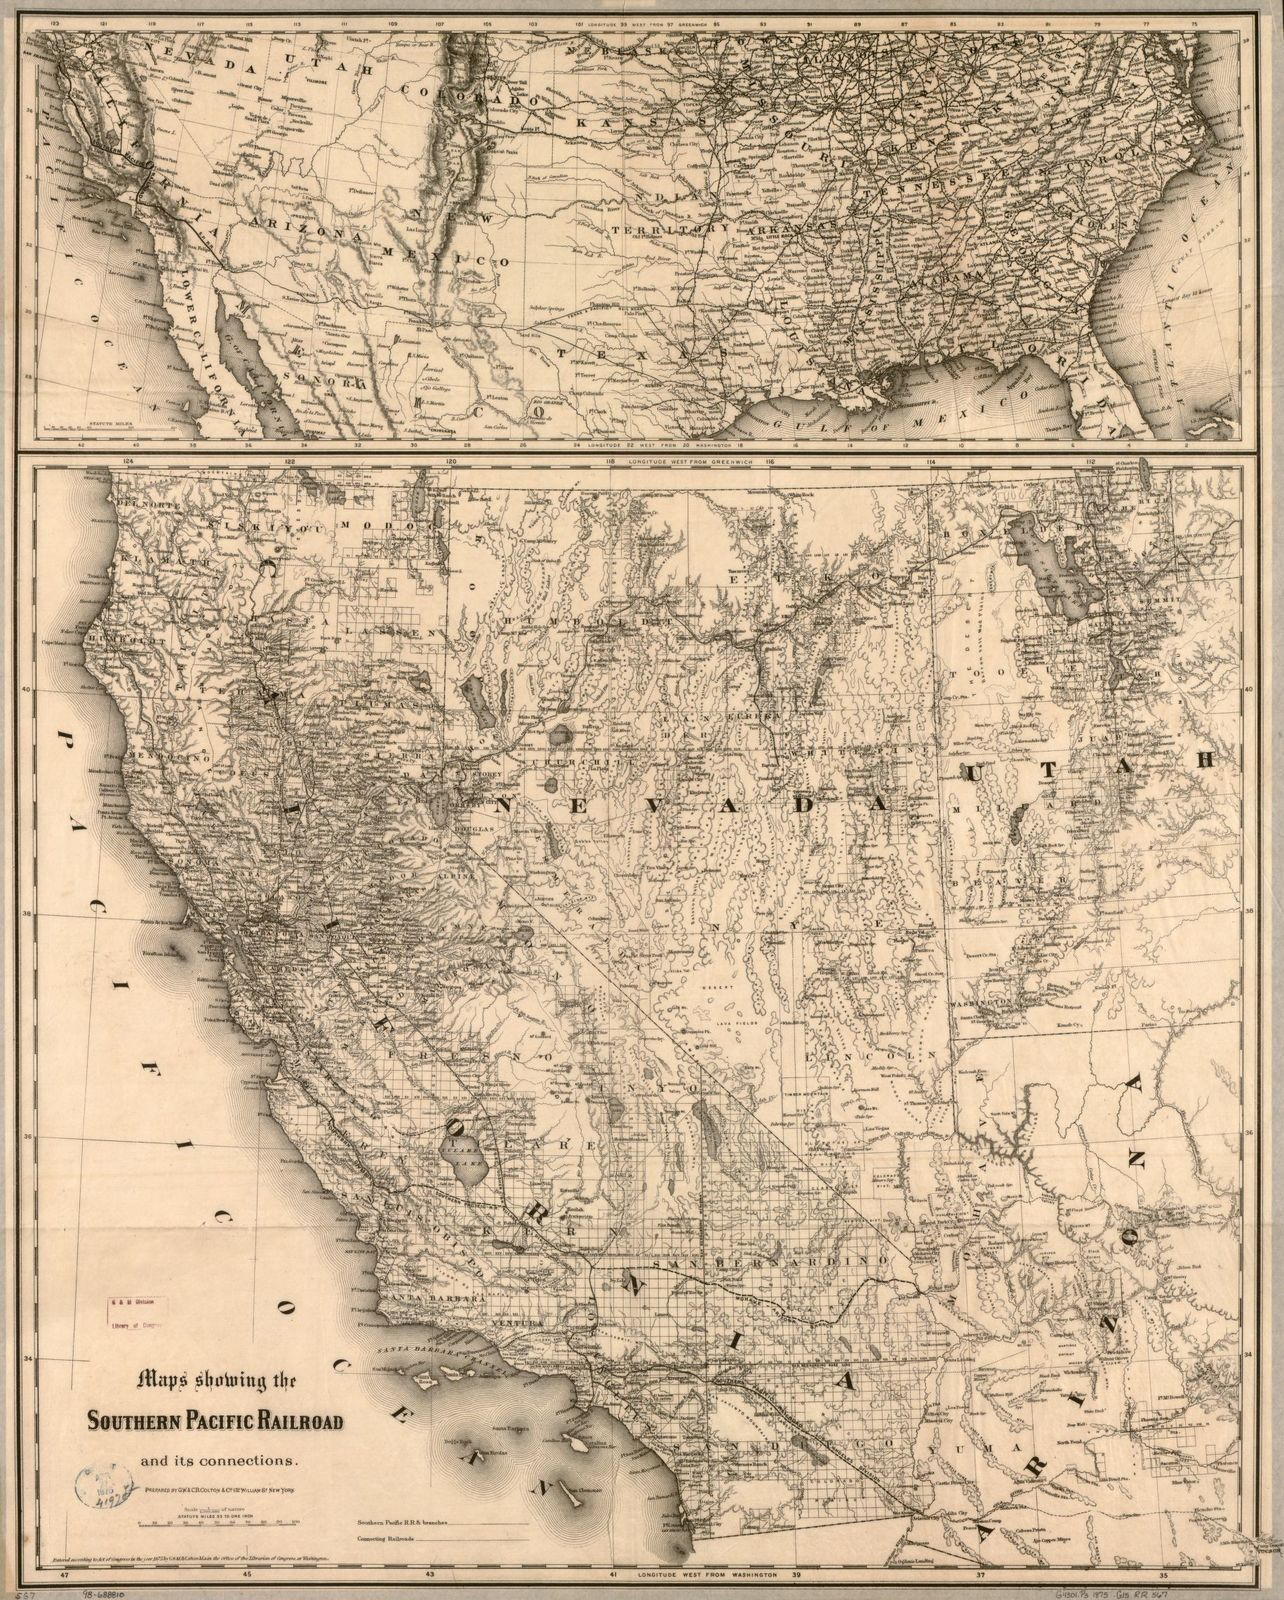 Maps showing the Southern Pacific Railroad and its